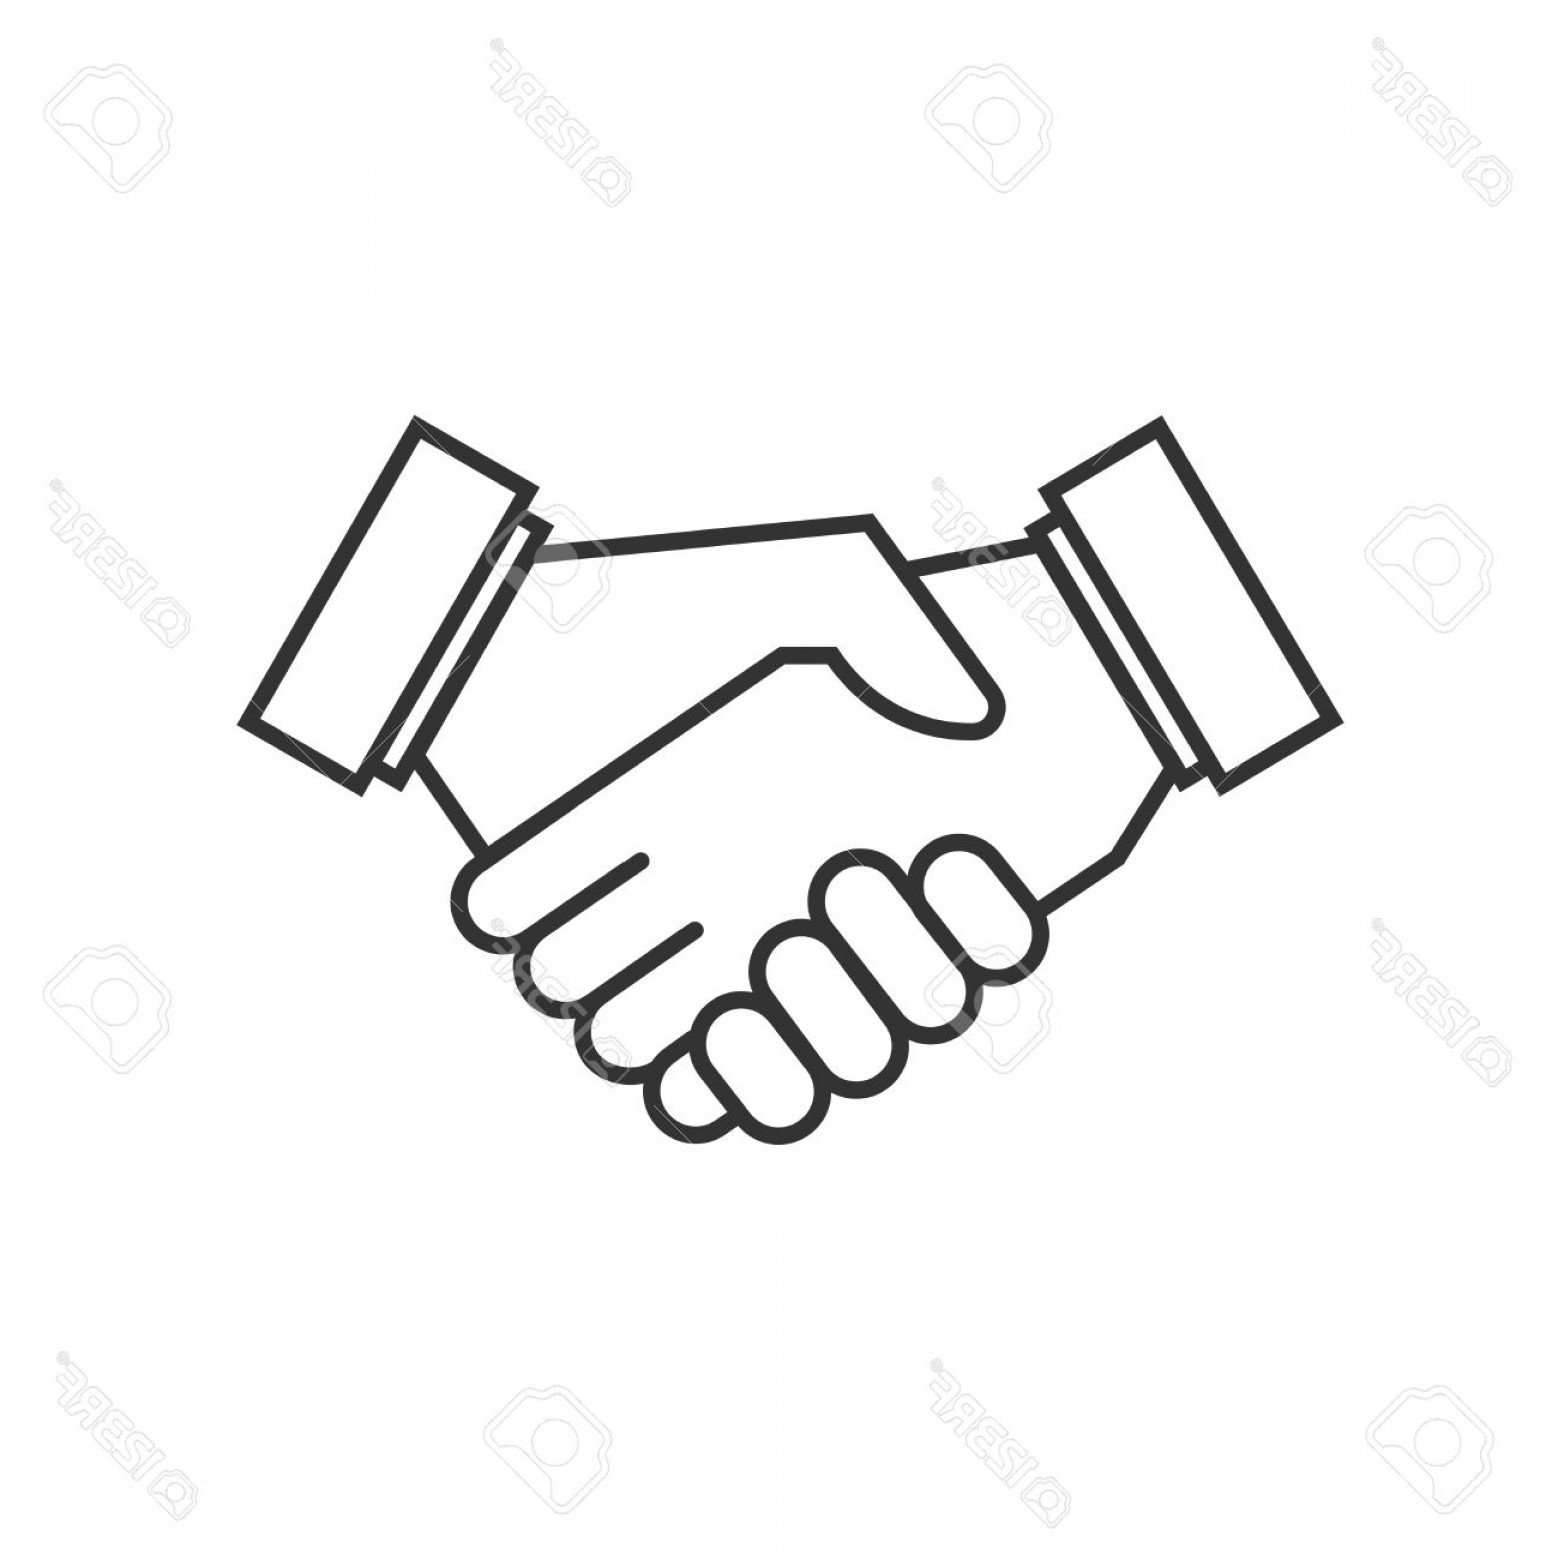 Handshake Vector Art: Photostock Vector Business Agreement Handshake Vector Icons Agreement Symbol Partnership Handshake Icon Agreement Deal